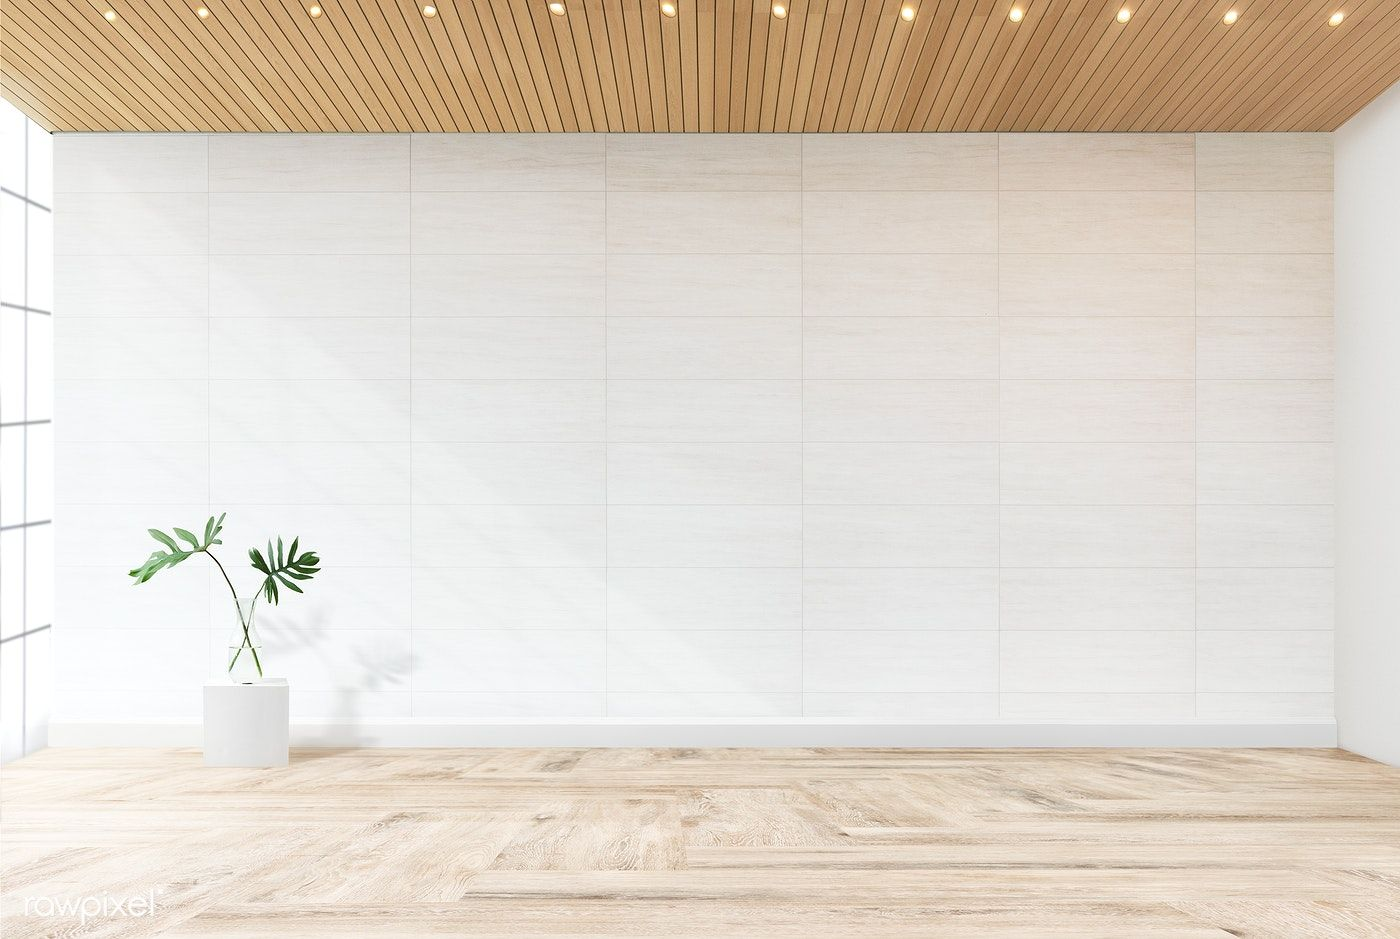 Plant Against A White Wall Mockup Free Image By Rawpixel Com White Walls Empty Room Room